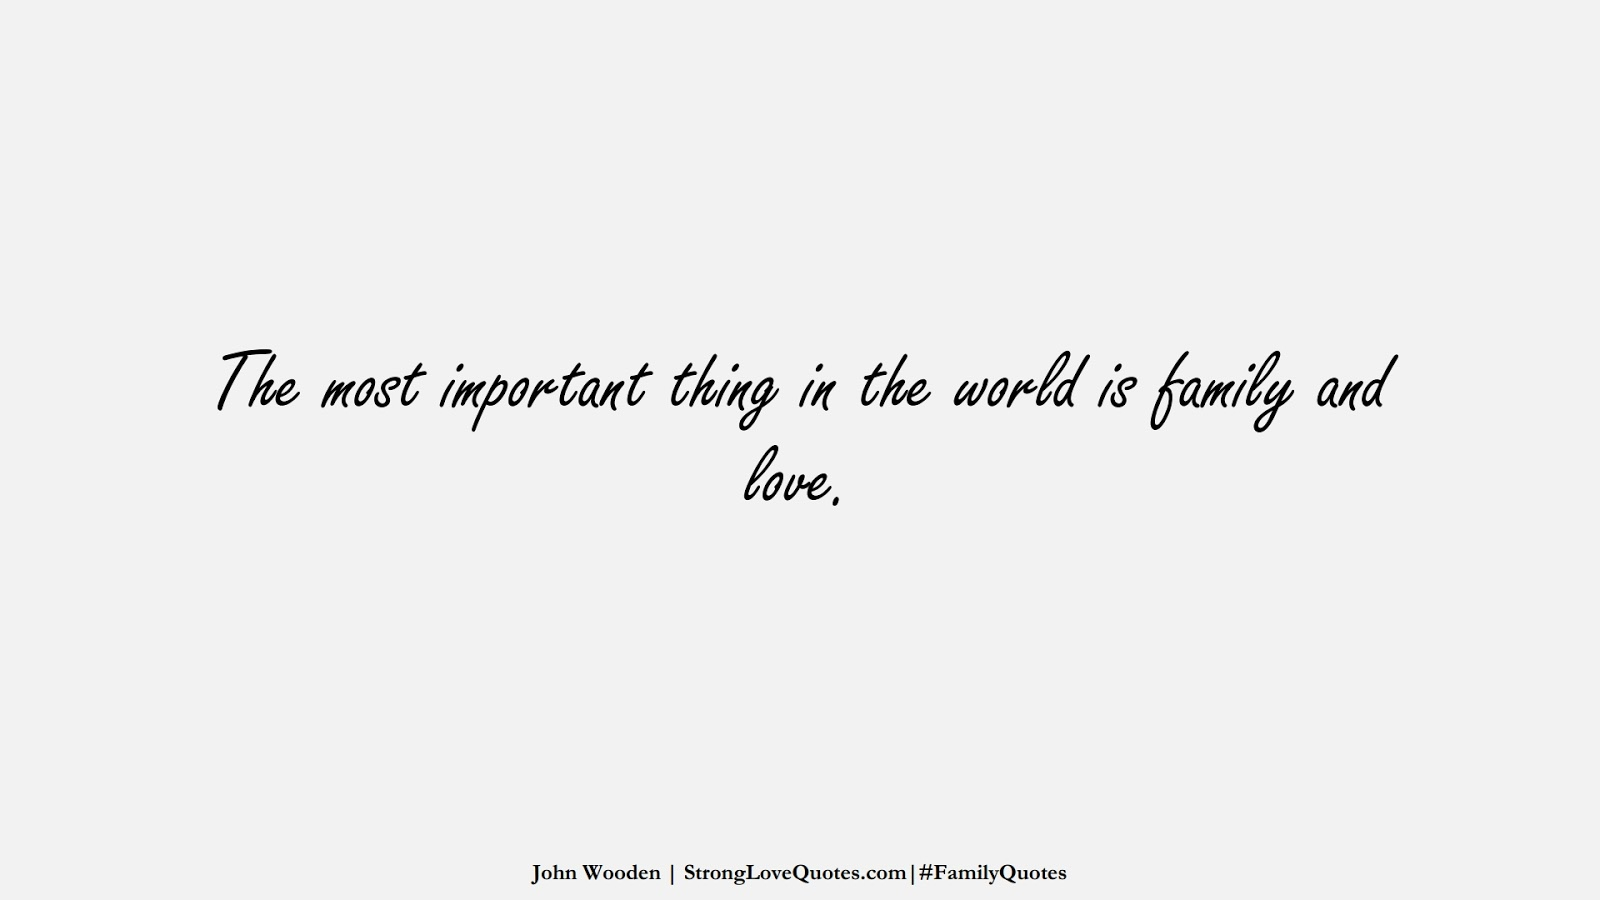 The most important thing in the world is family and love. (John Wooden);  #FamilyQuotes